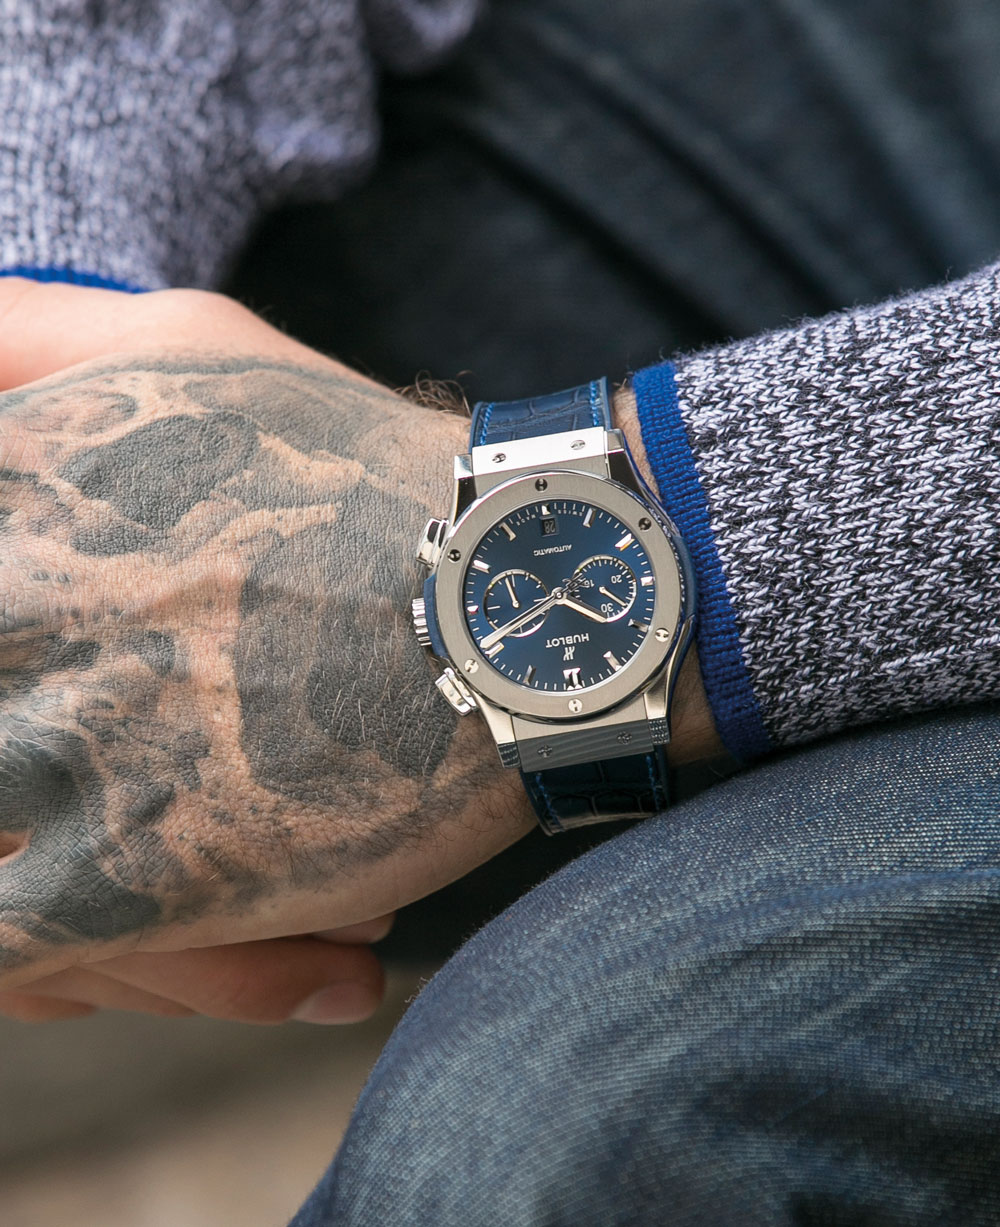 Tag Heuer Uk >> ONES TO WATCH: HUBLOT CLASSIC FUSION BLUE REVIEW | ROX MAGAZINE